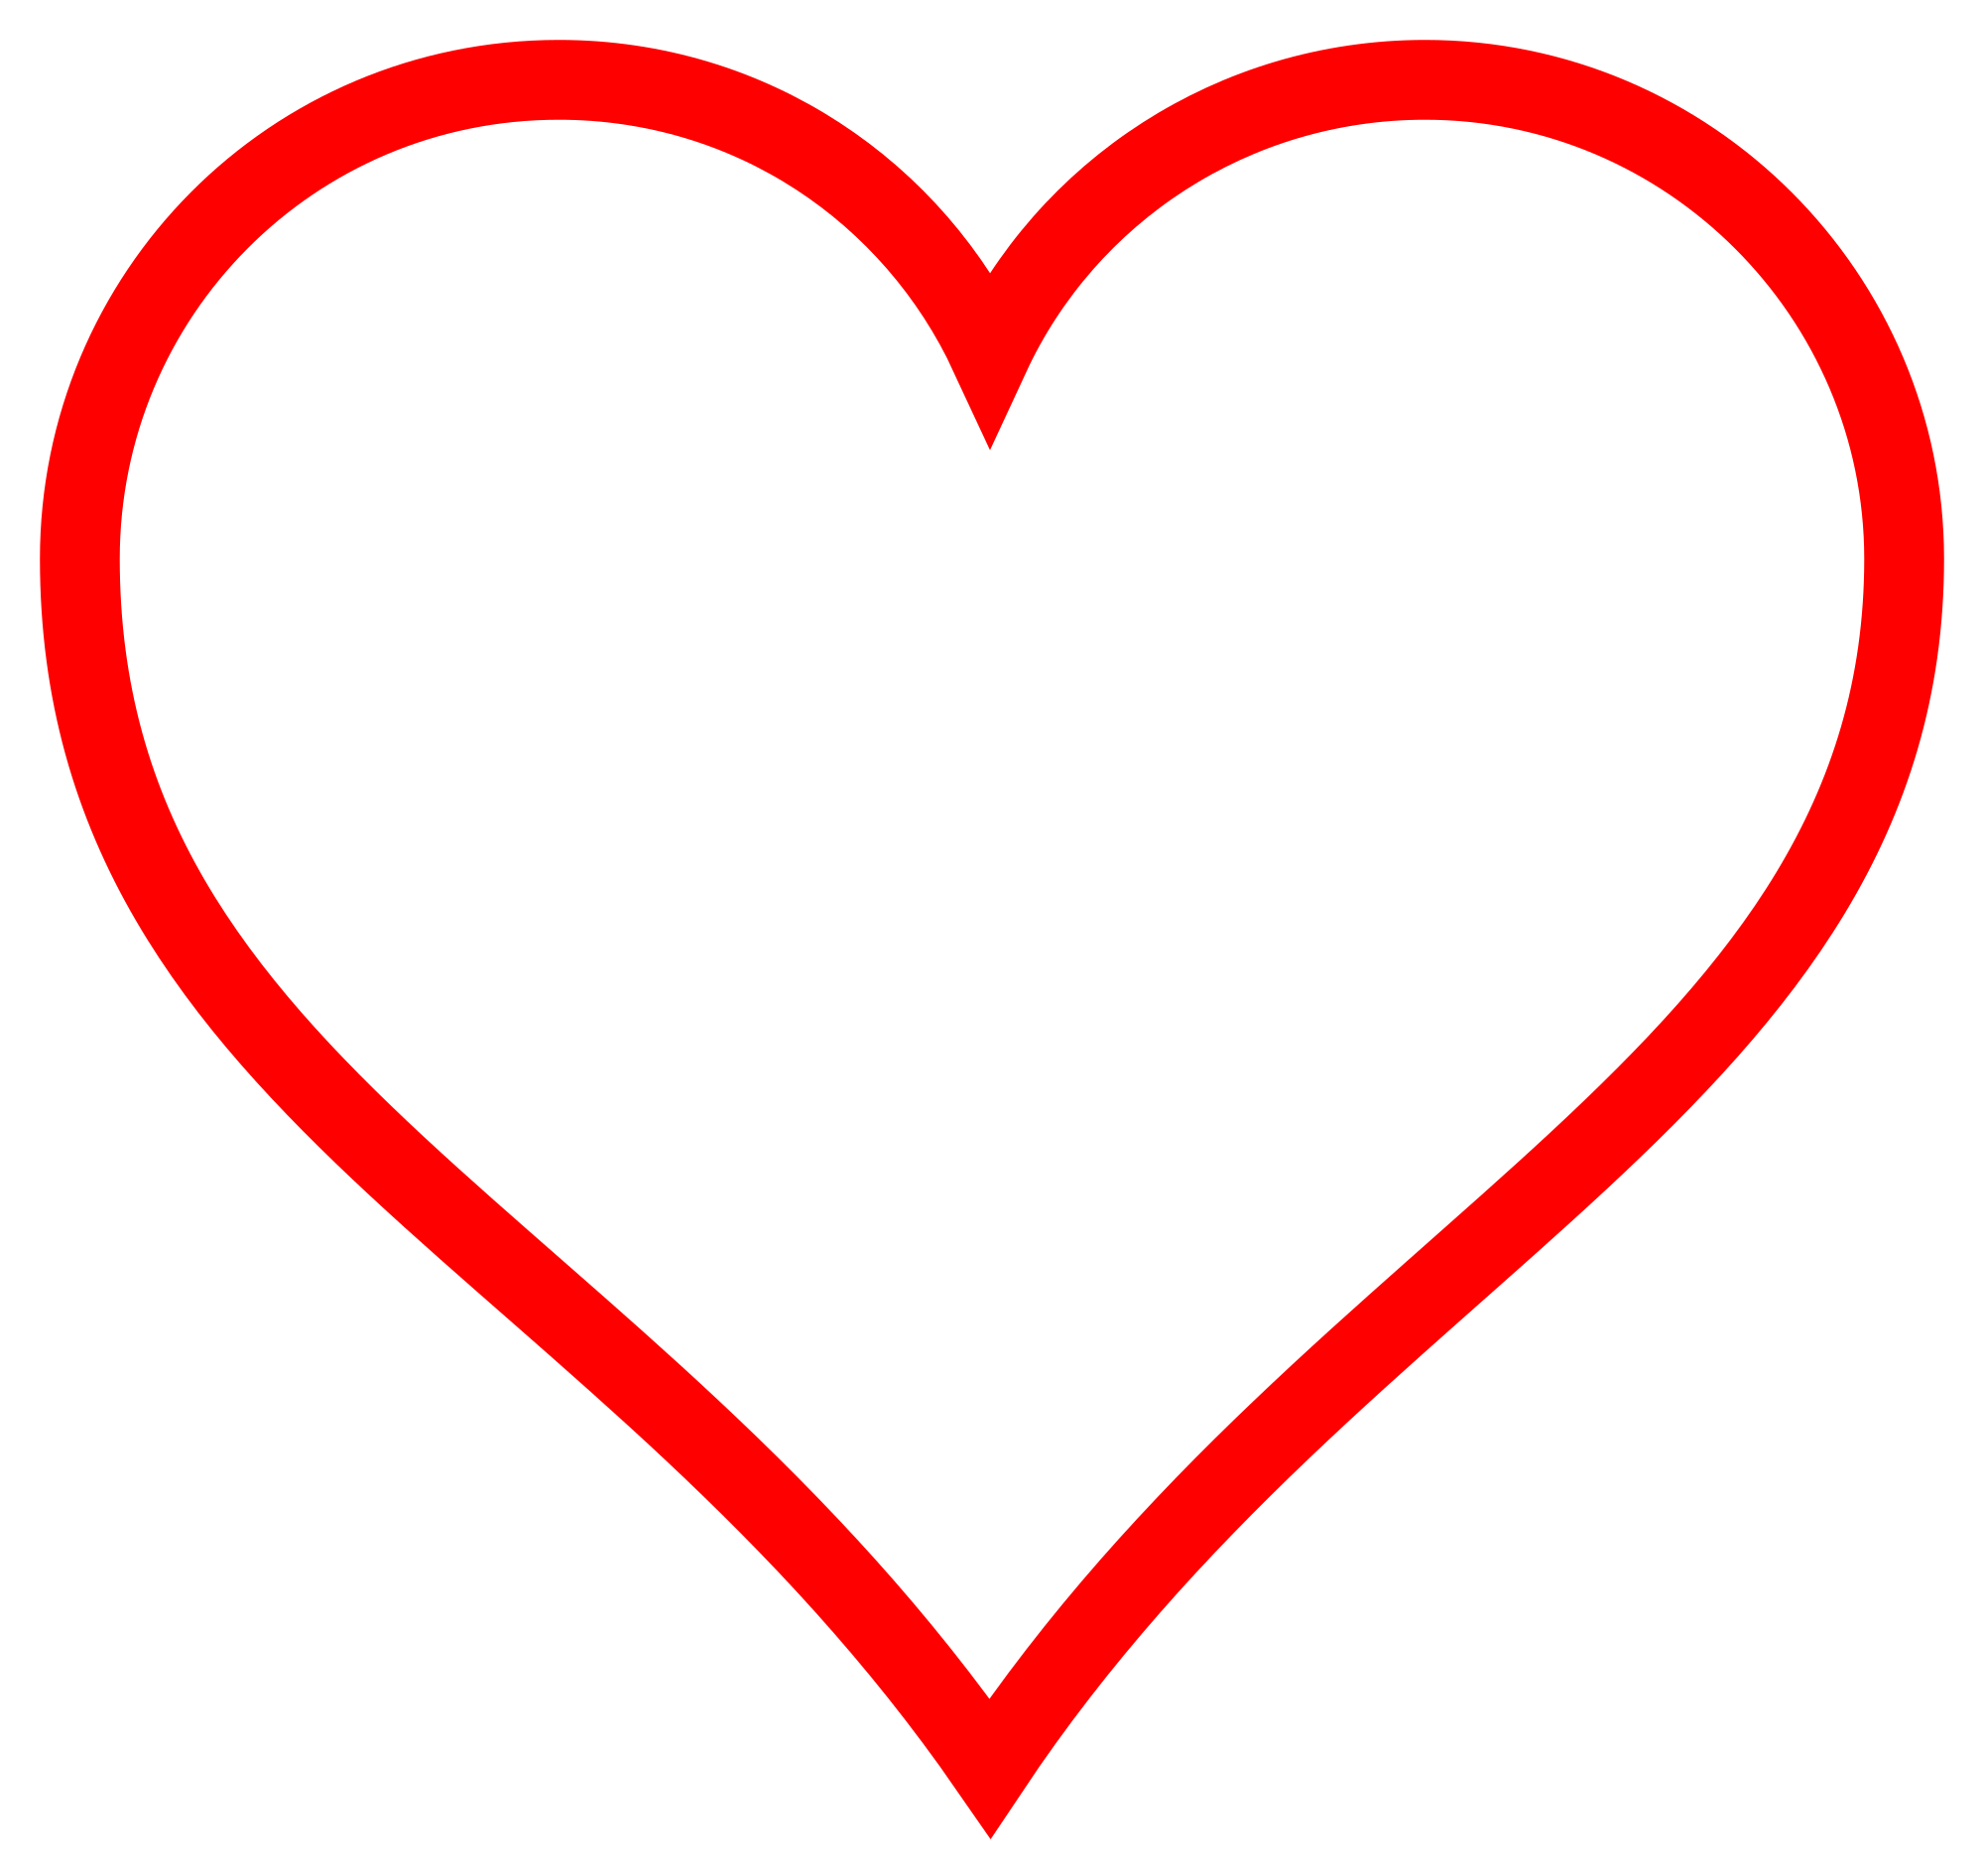 Person svg heart clipart. File icon red hollow